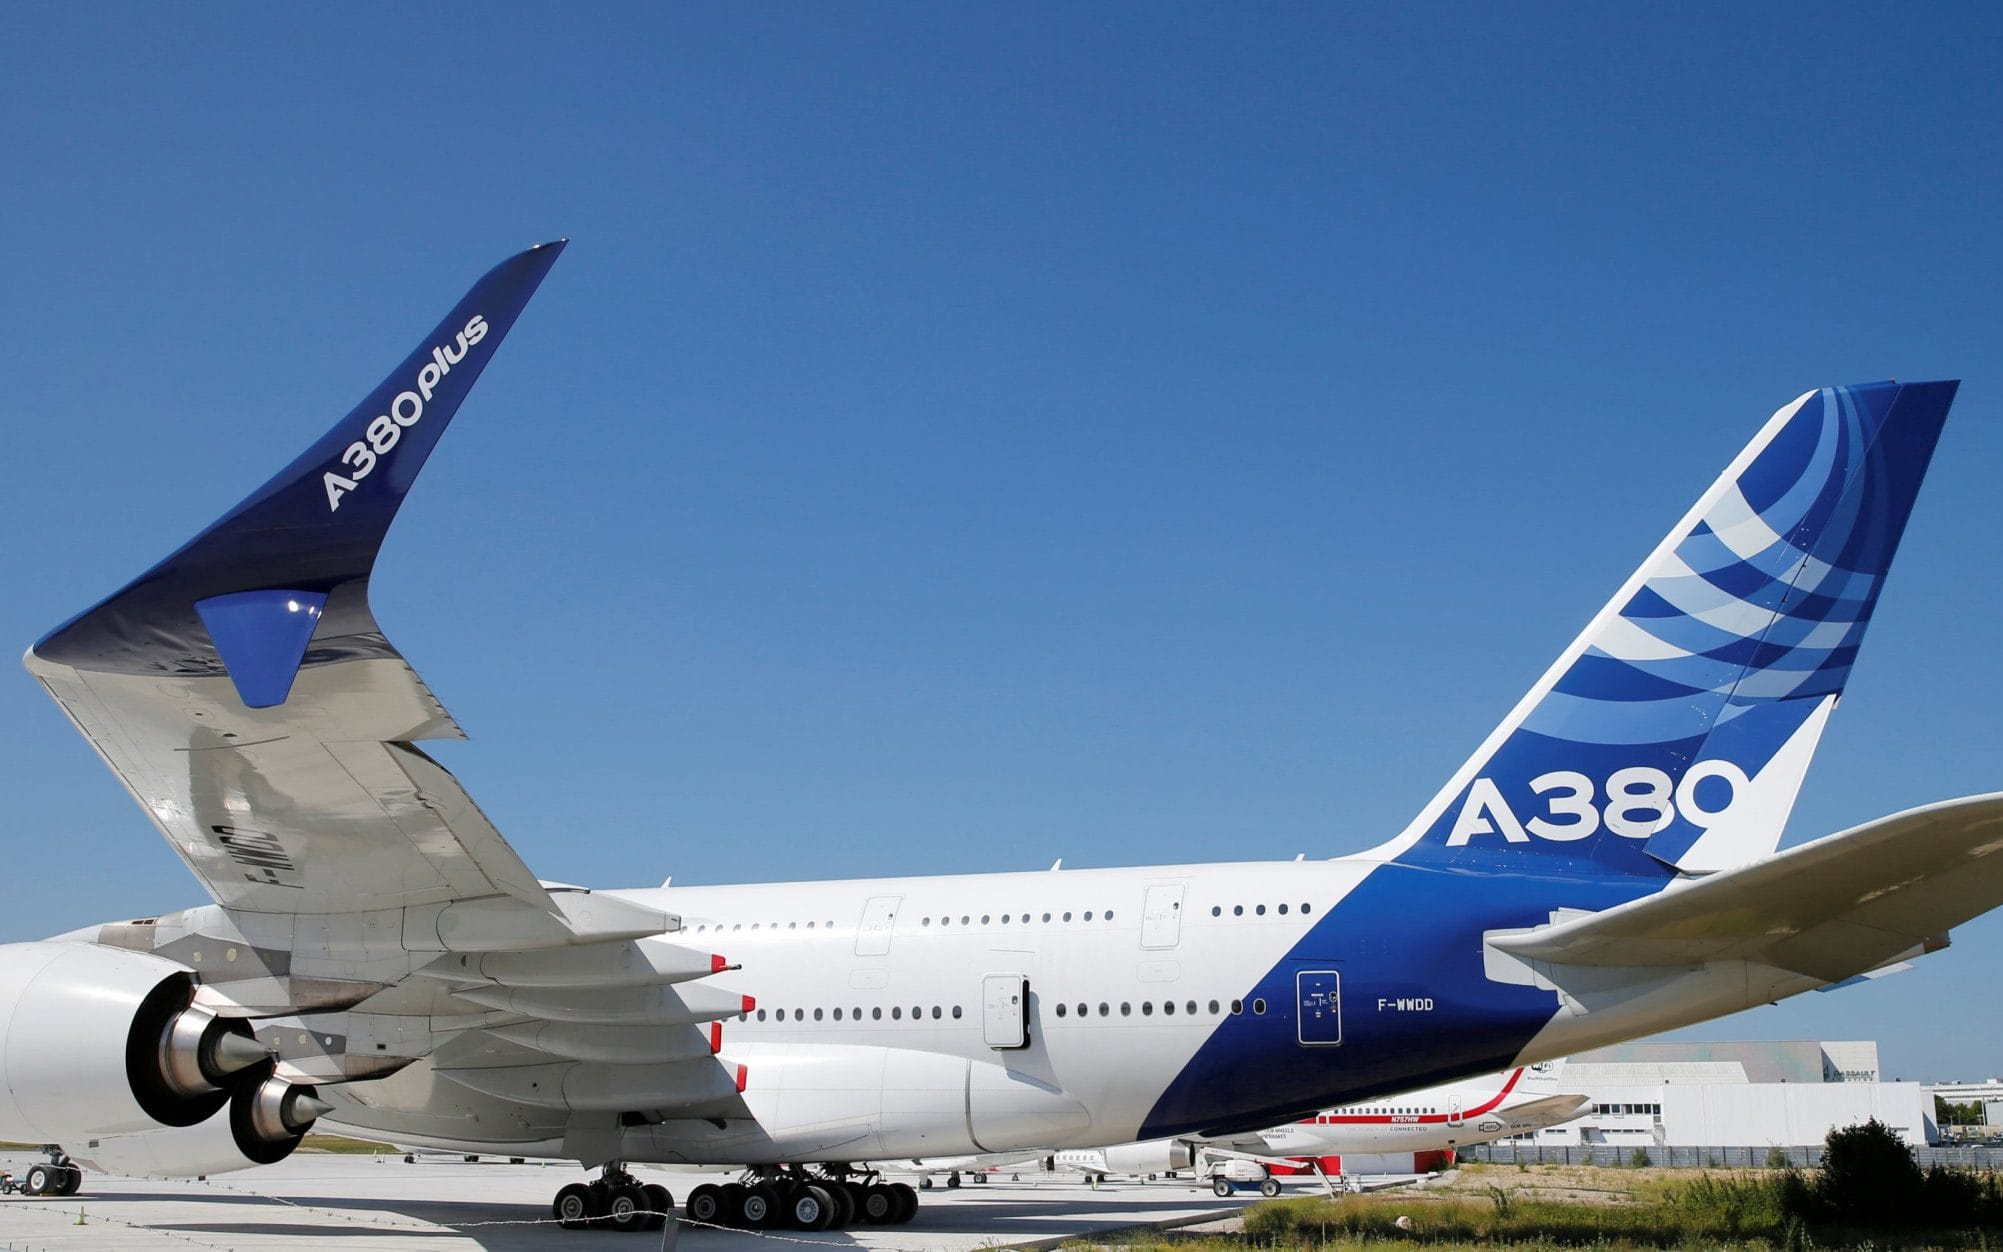 Airbus cuts A380 production again as doubts grow over future of 'superjumbo'